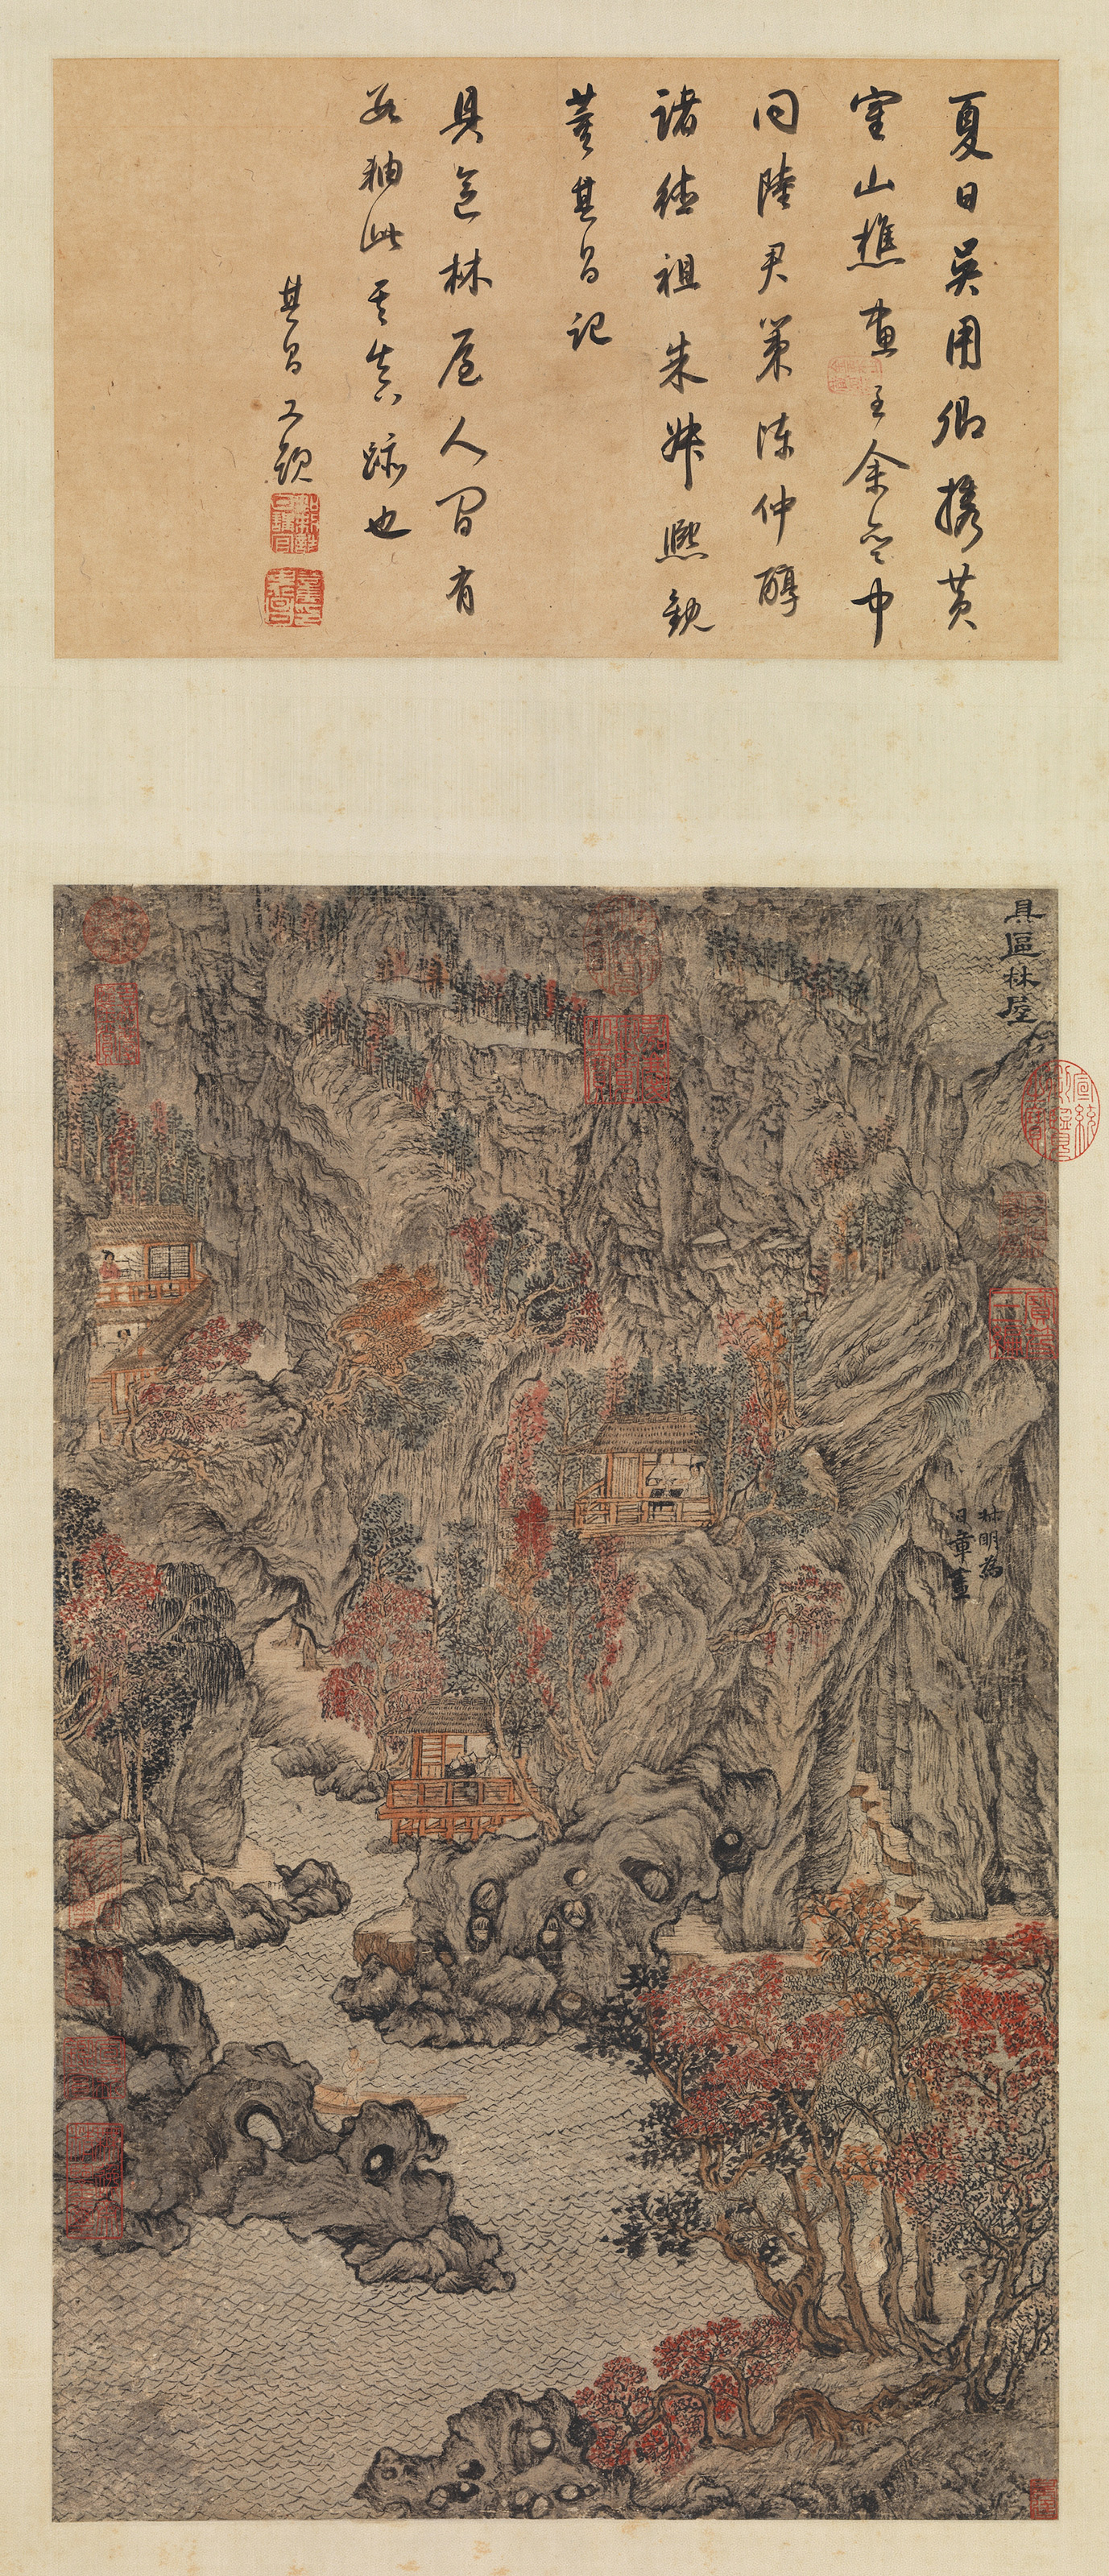 Forest Grotto in Juqu, 1370 — Wang Meng,